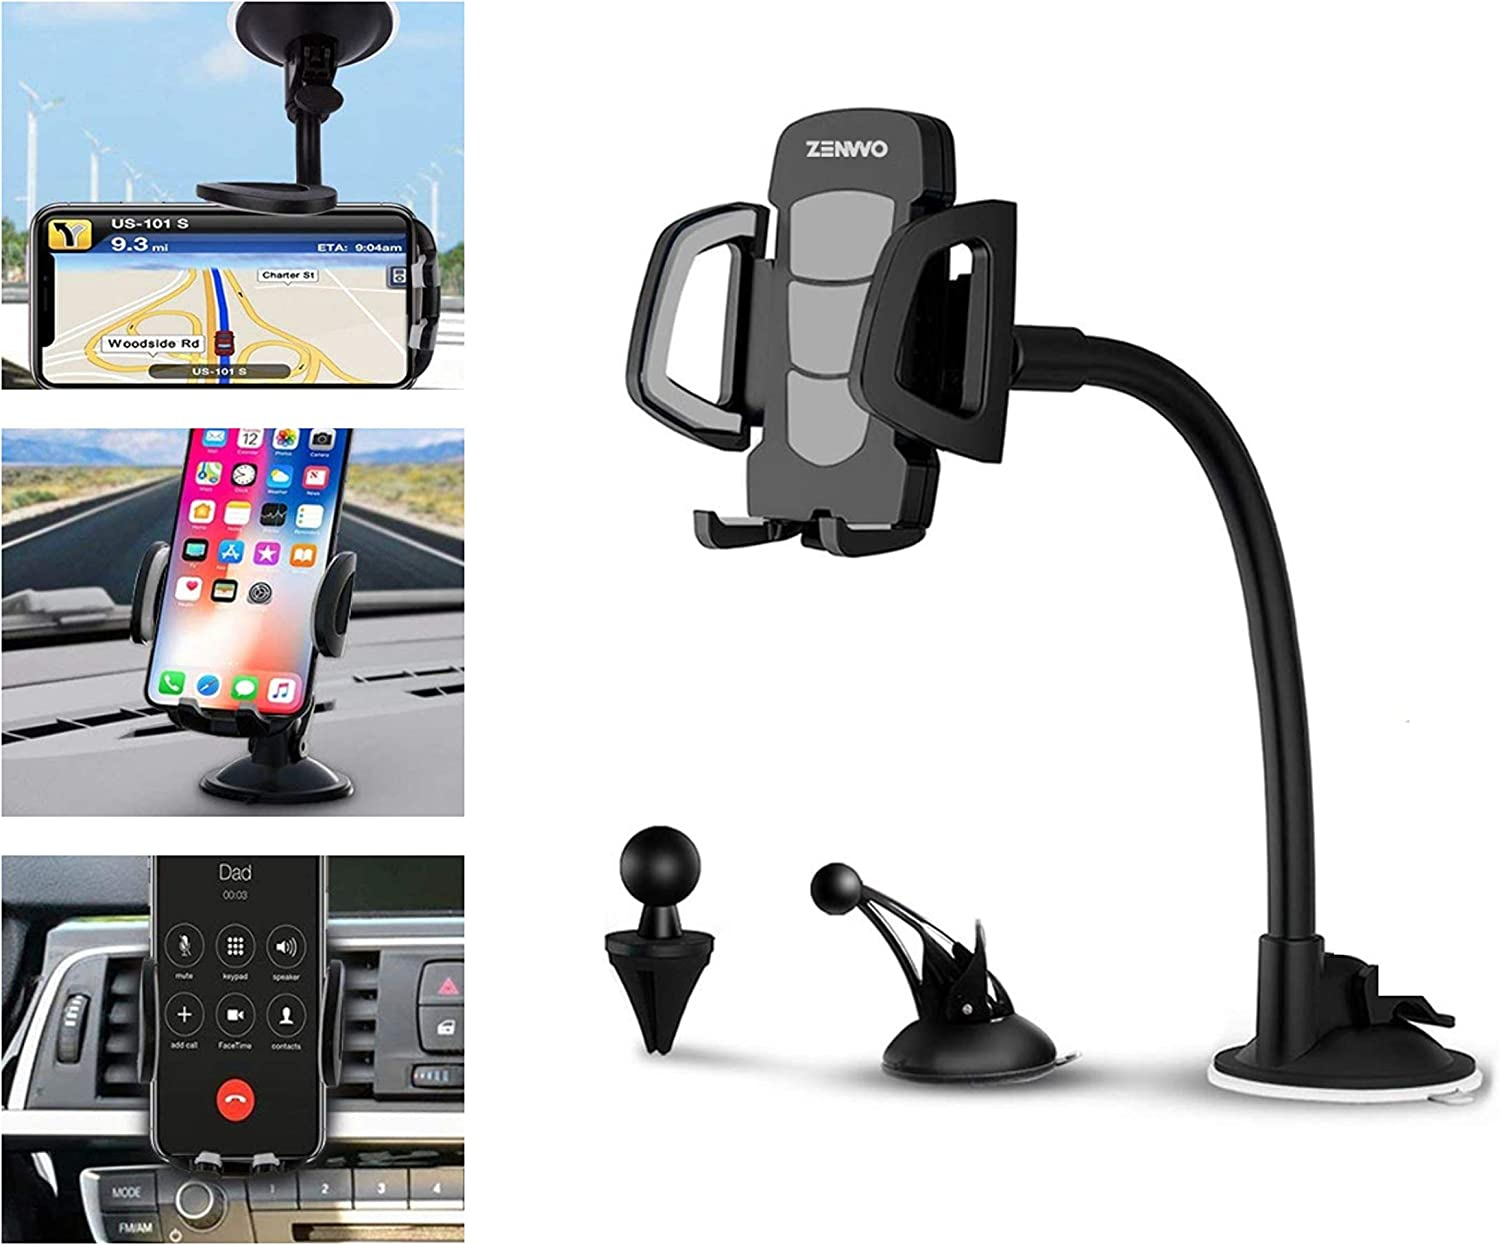 Dashboard and Windshield Mount//Compatible with iPhones//Note//Galaxy//Google and More Car Phone Holder ZENVVO 3-in-1 Universal Phone Holder for Air Vent